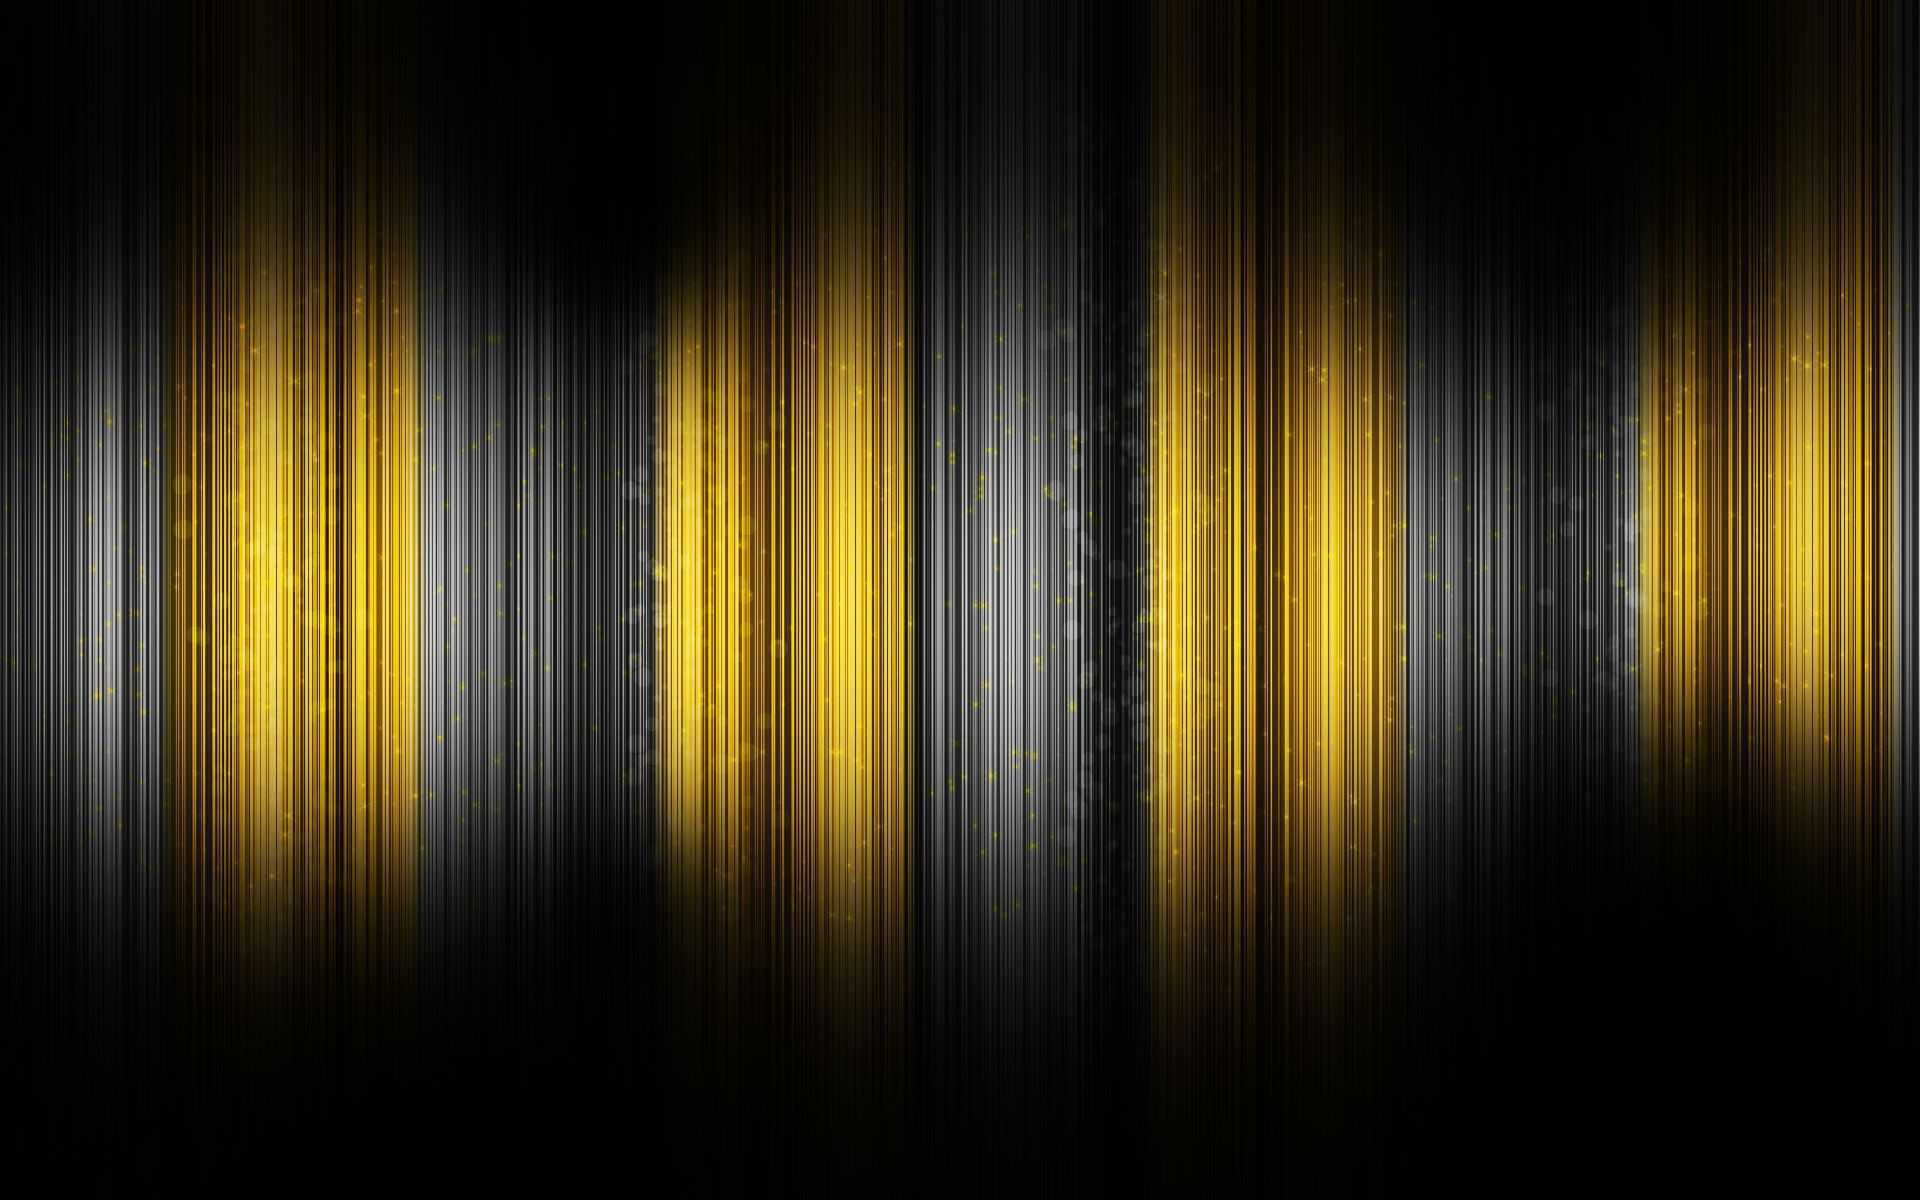 Black And Yellow In High Resolution